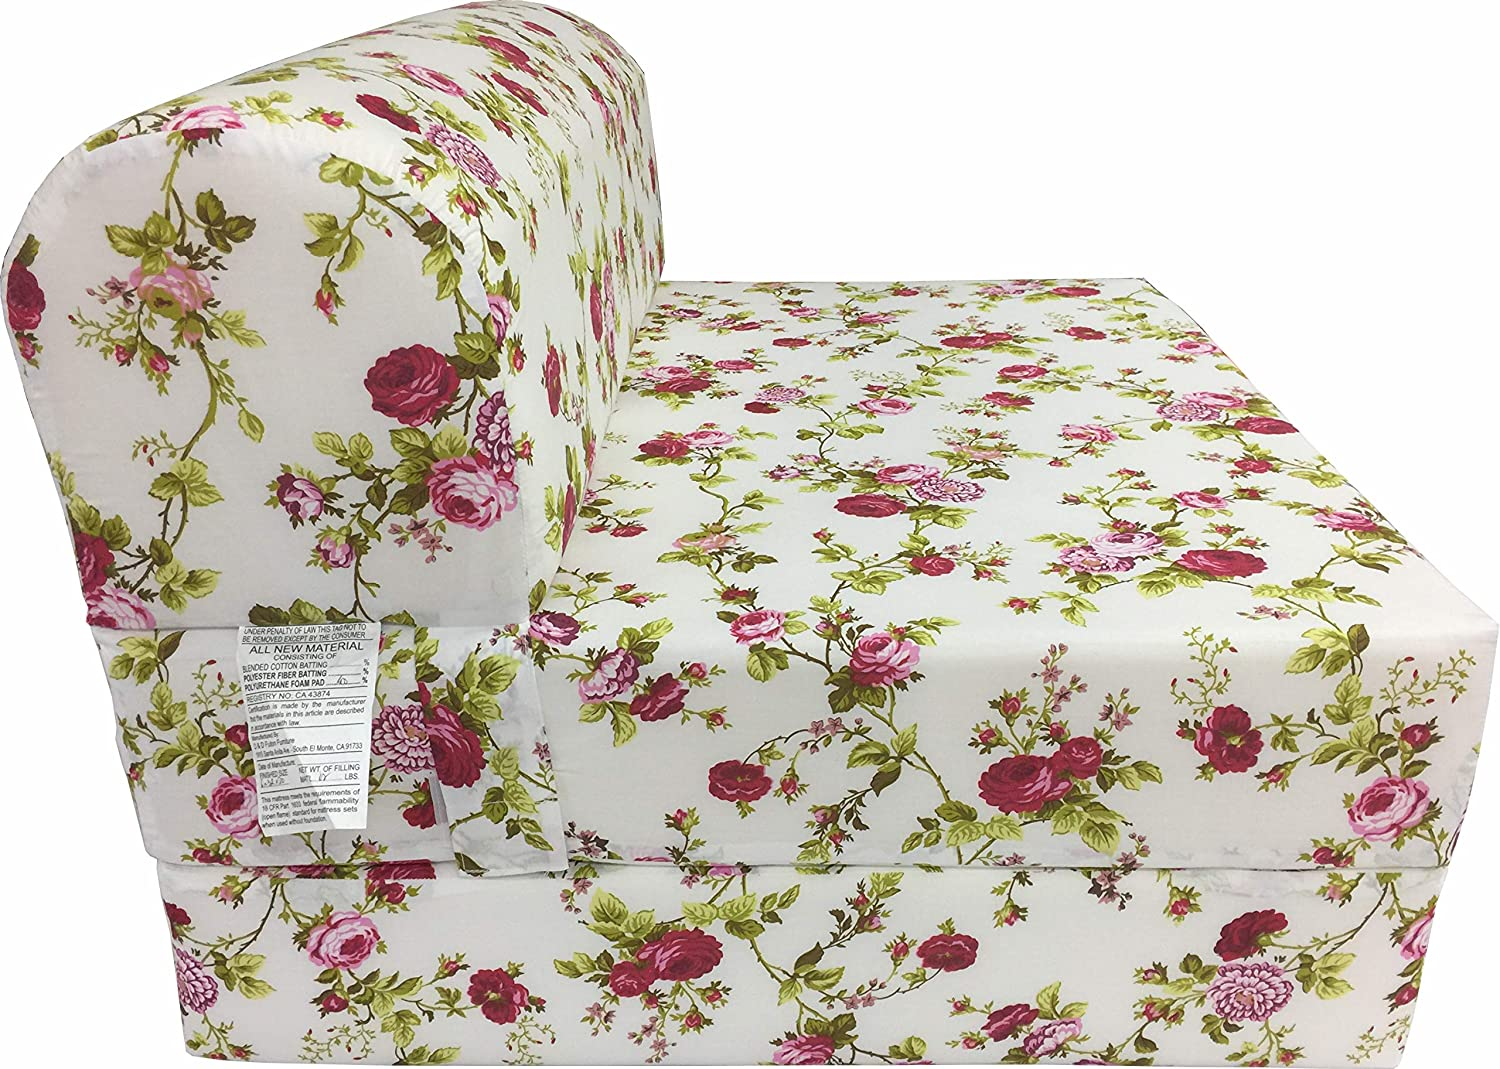 D D Futon Furniture Red Rose White Sleeper Chair Folding Foam Bed Sized 6 Thick X 32 Wide X 70 Long, Studio Guest Foldable Chair Beds, Foam Sofa, Couch, High Density Foam 1.8 Pounds.